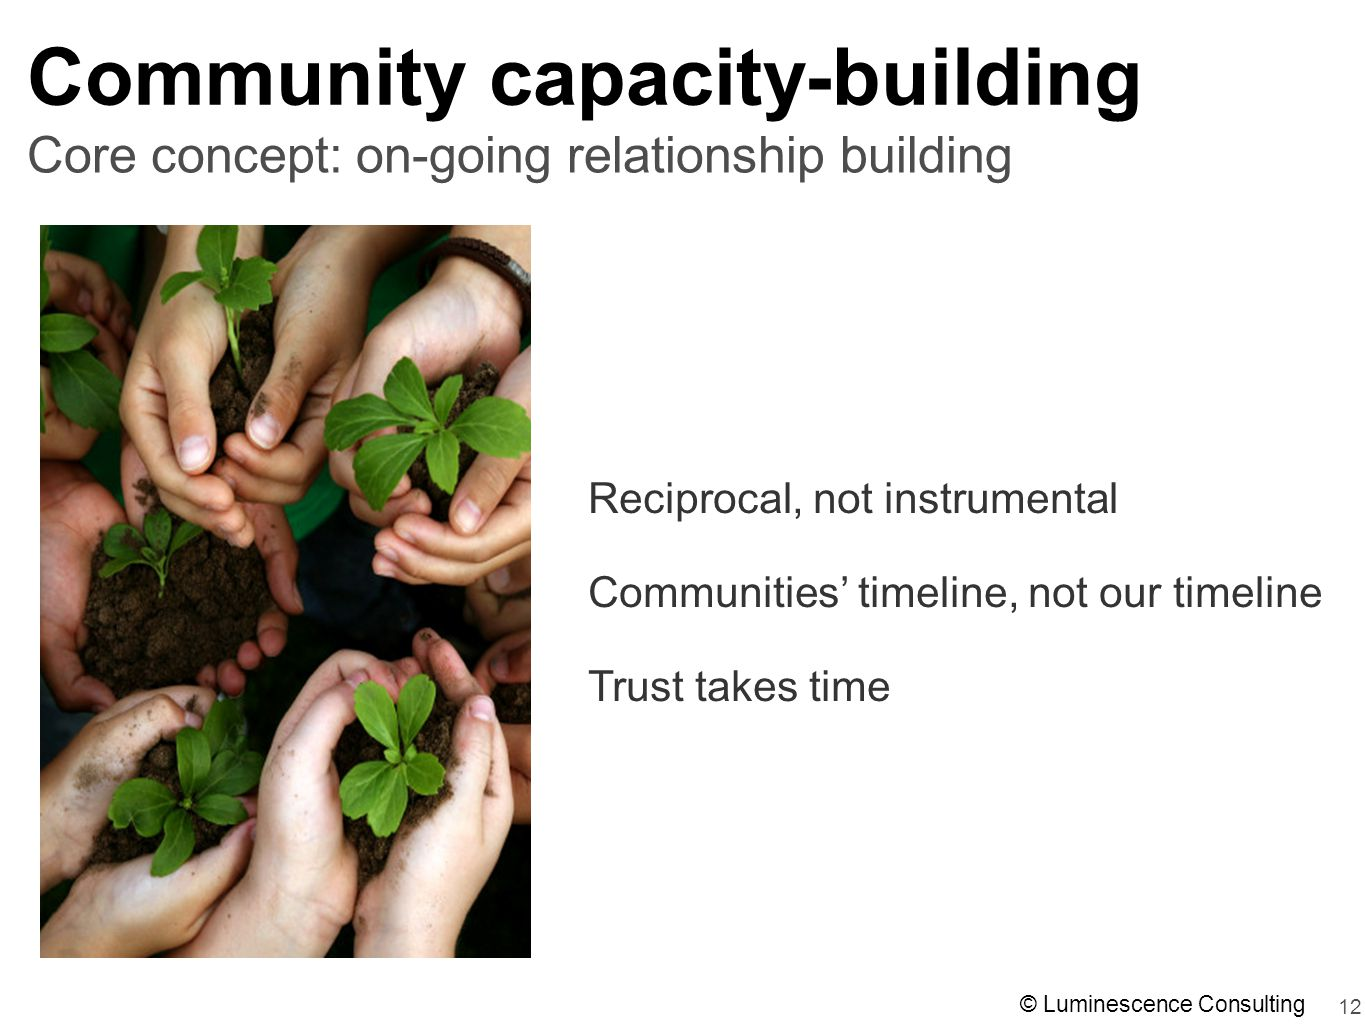 12 Community capacity-building Reciprocal, not instrumental Communities' timeline, not our timeline Trust takes time Core concept: on-going relationship building © Luminescence Consulting